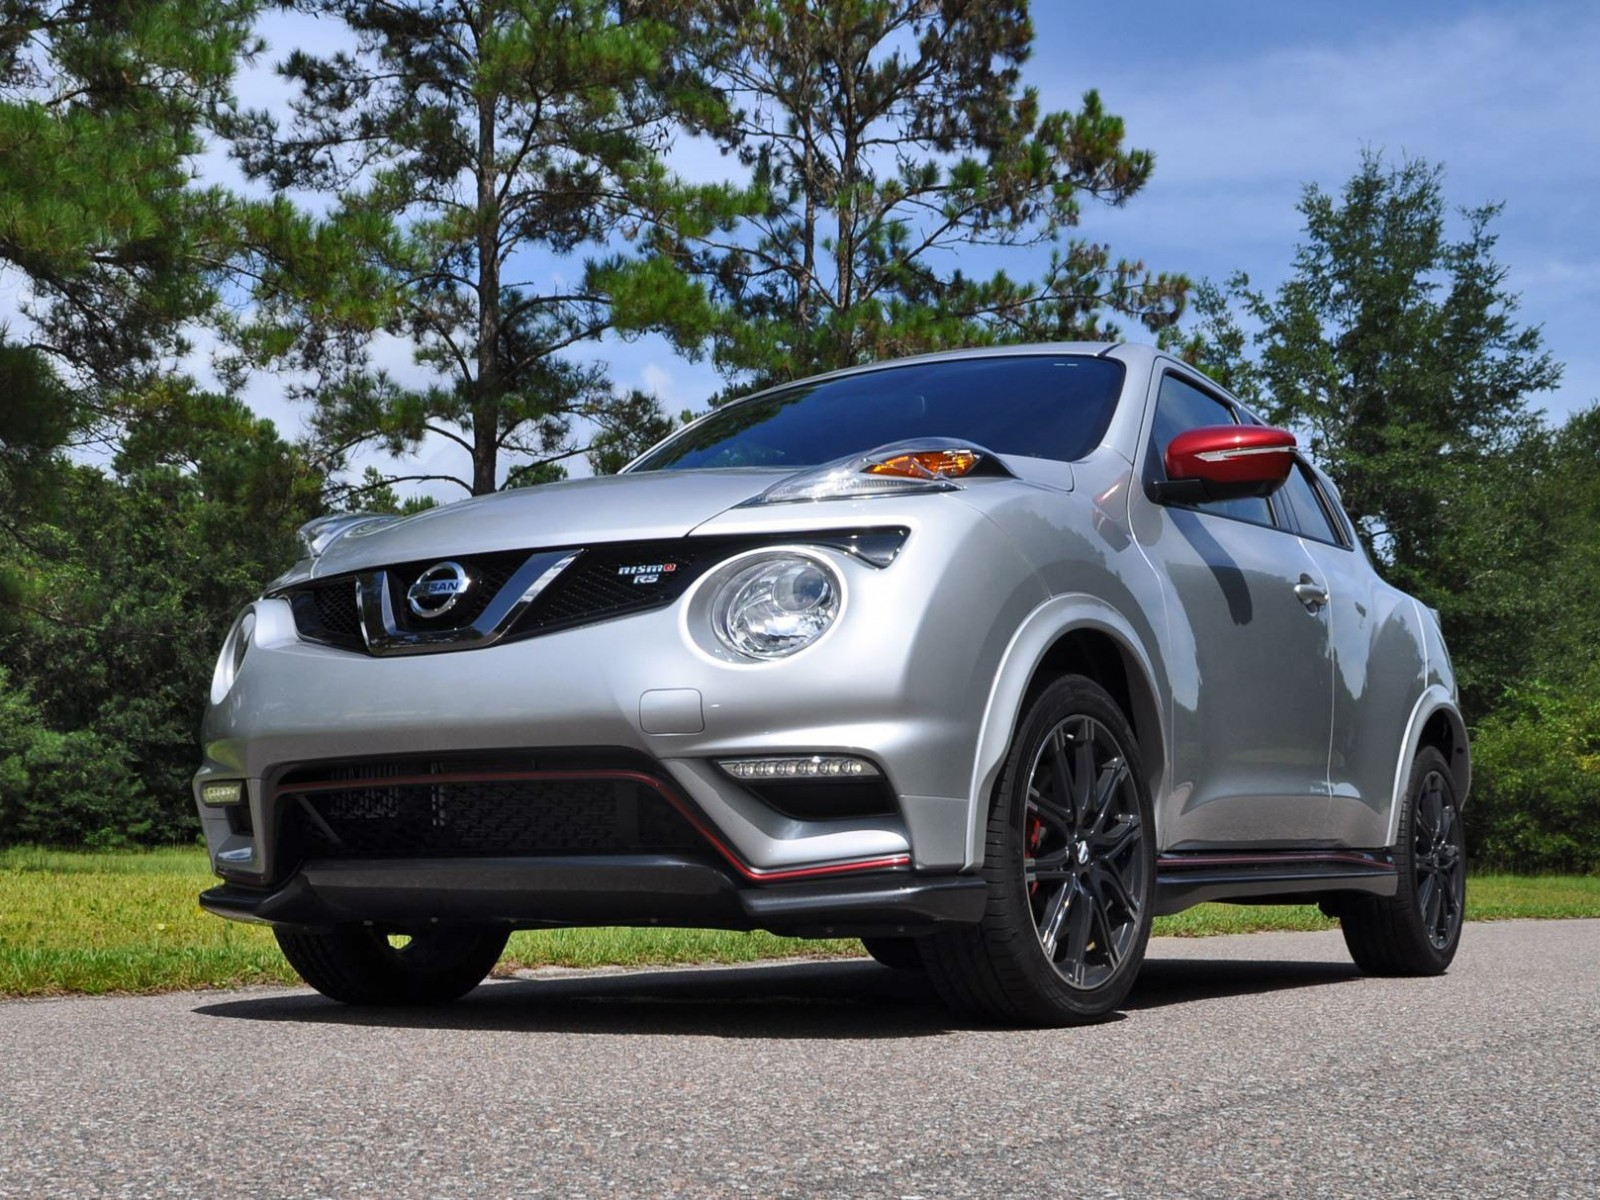 2015 nissan juke nismo rs manual 43. Black Bedroom Furniture Sets. Home Design Ideas